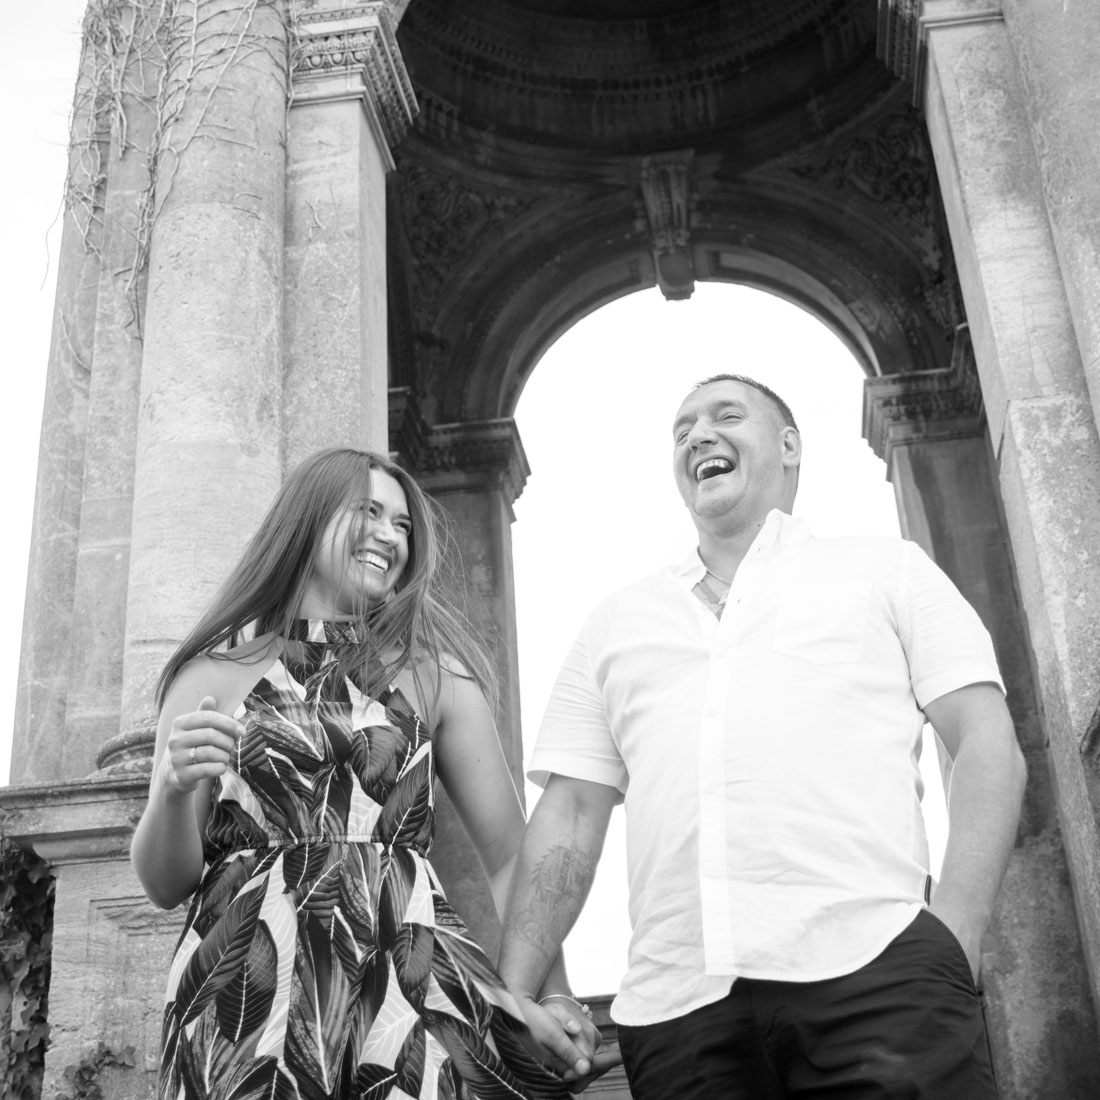 Wedding photoshoot in Witley Court and Gardens, Worcestershire. Wedding photographer West Midlands